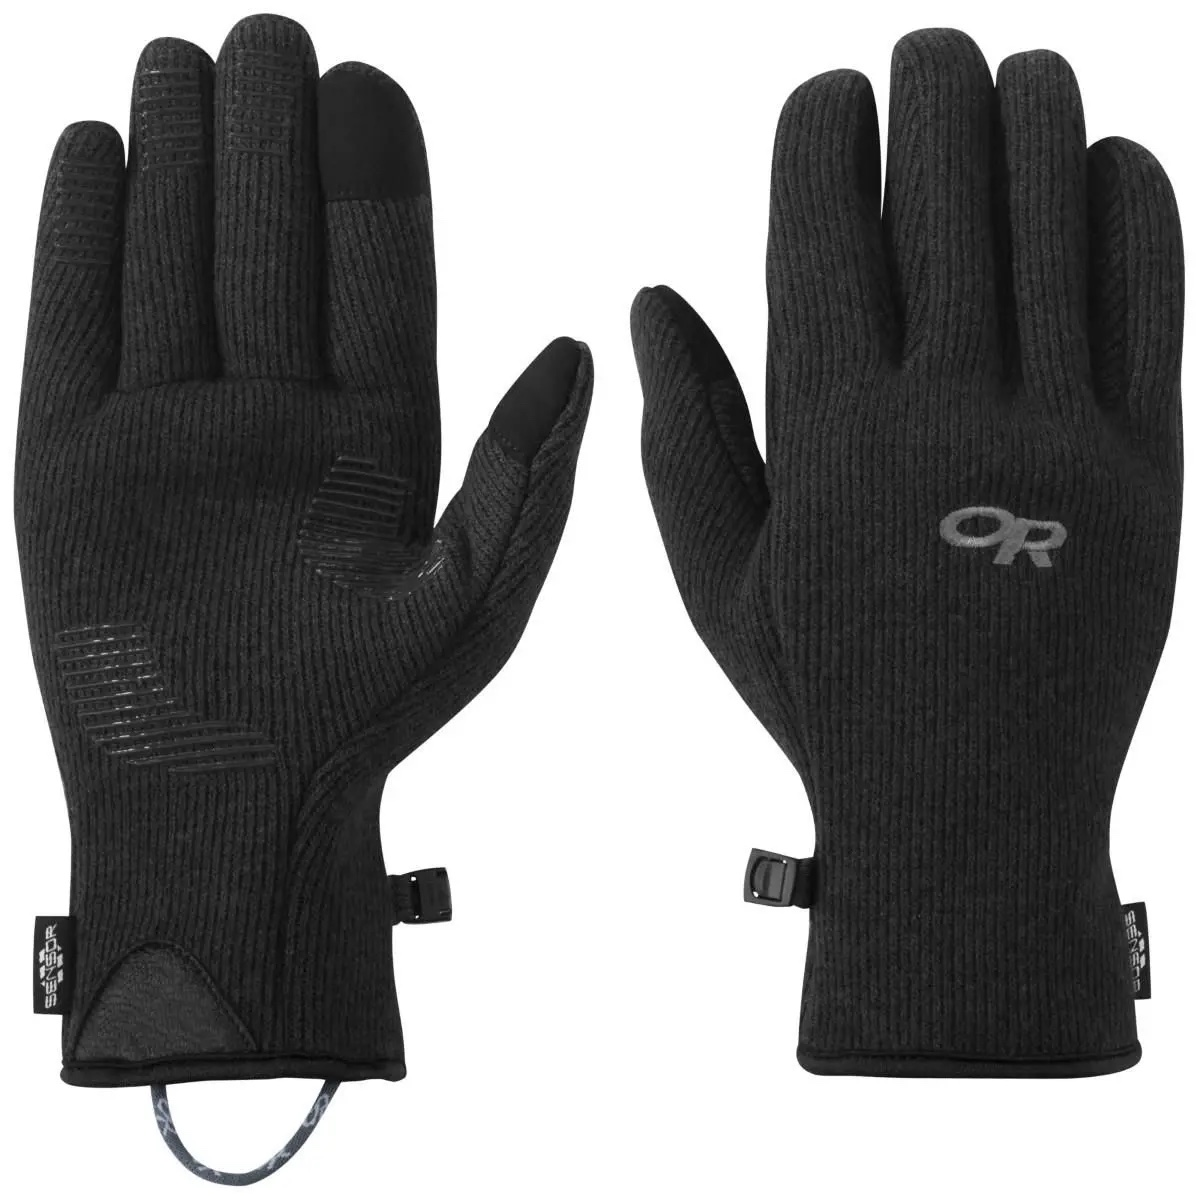 Outdoor Research Flurry Sensor Gloves stock image